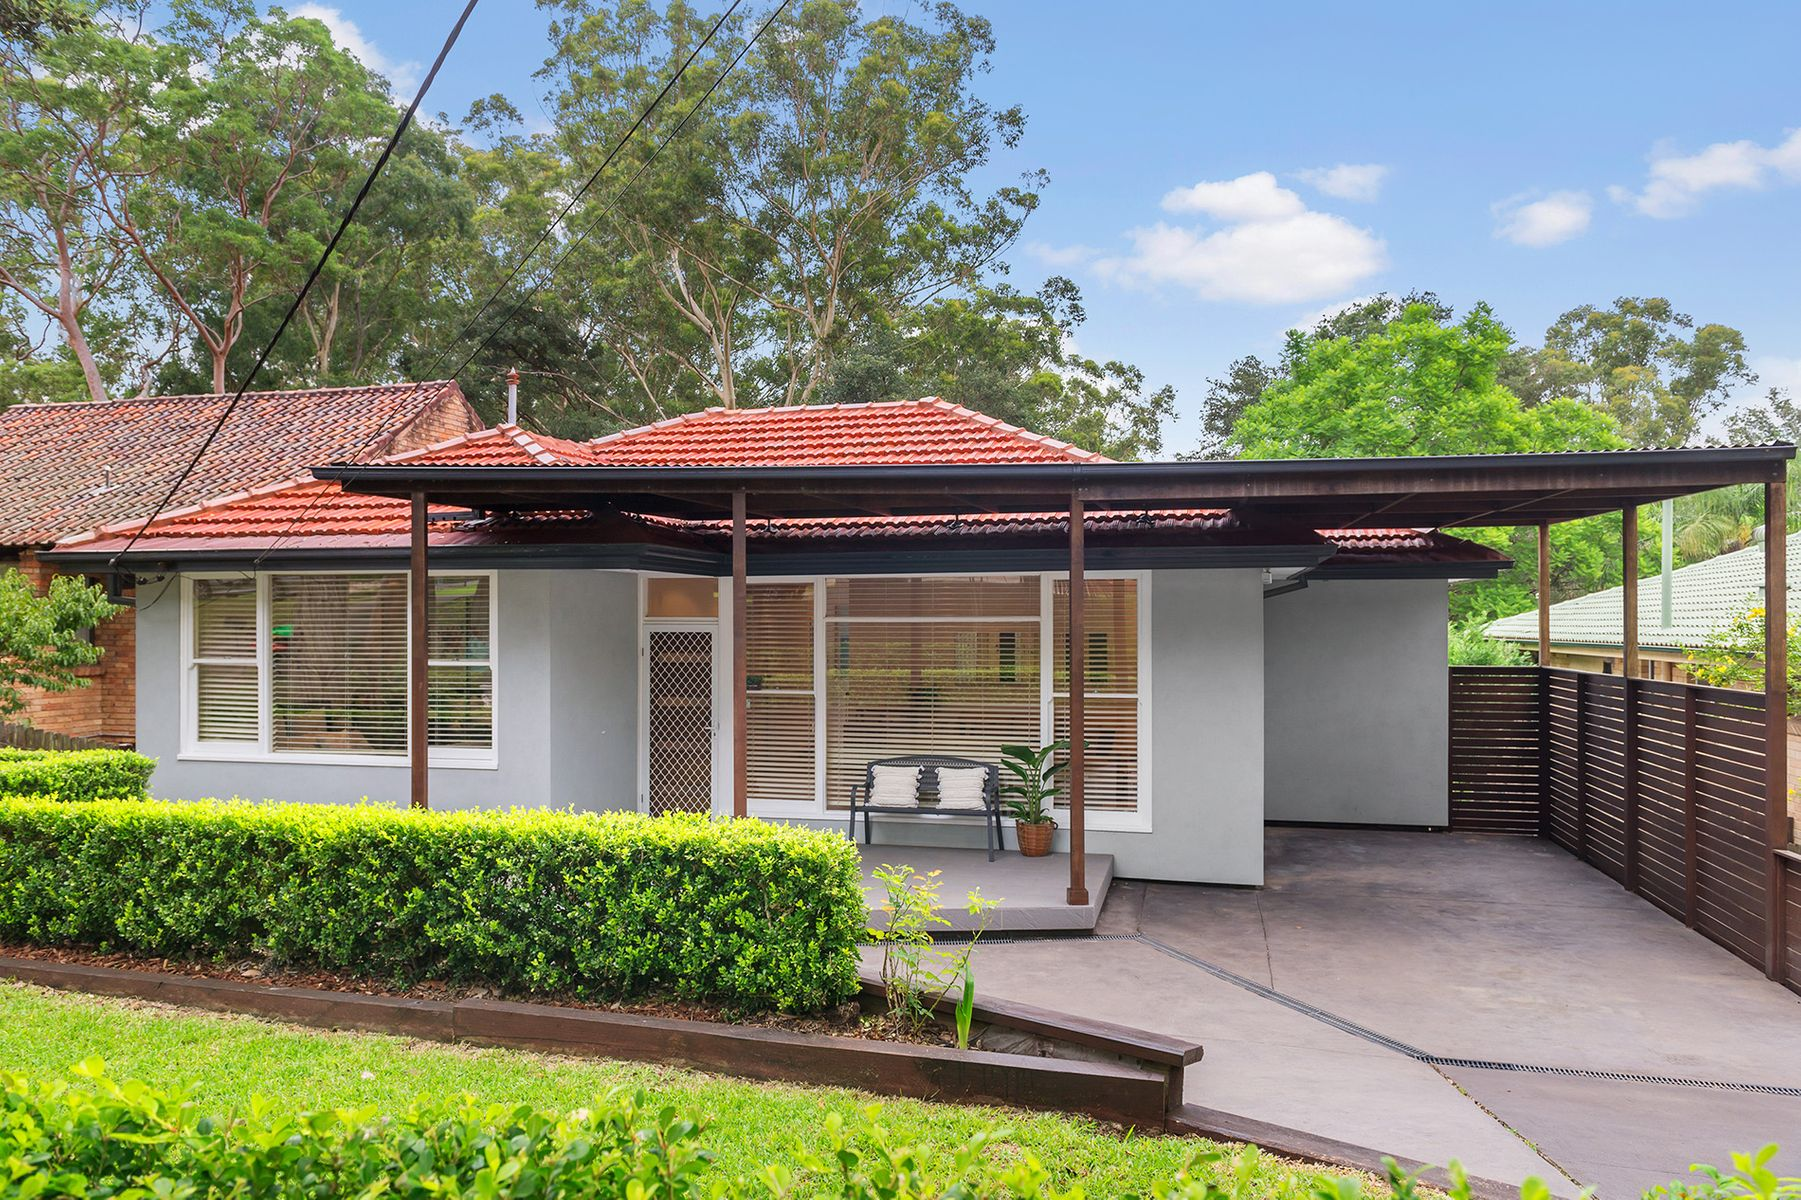 22 Austral Avenue, Beecroft, NSW 2119